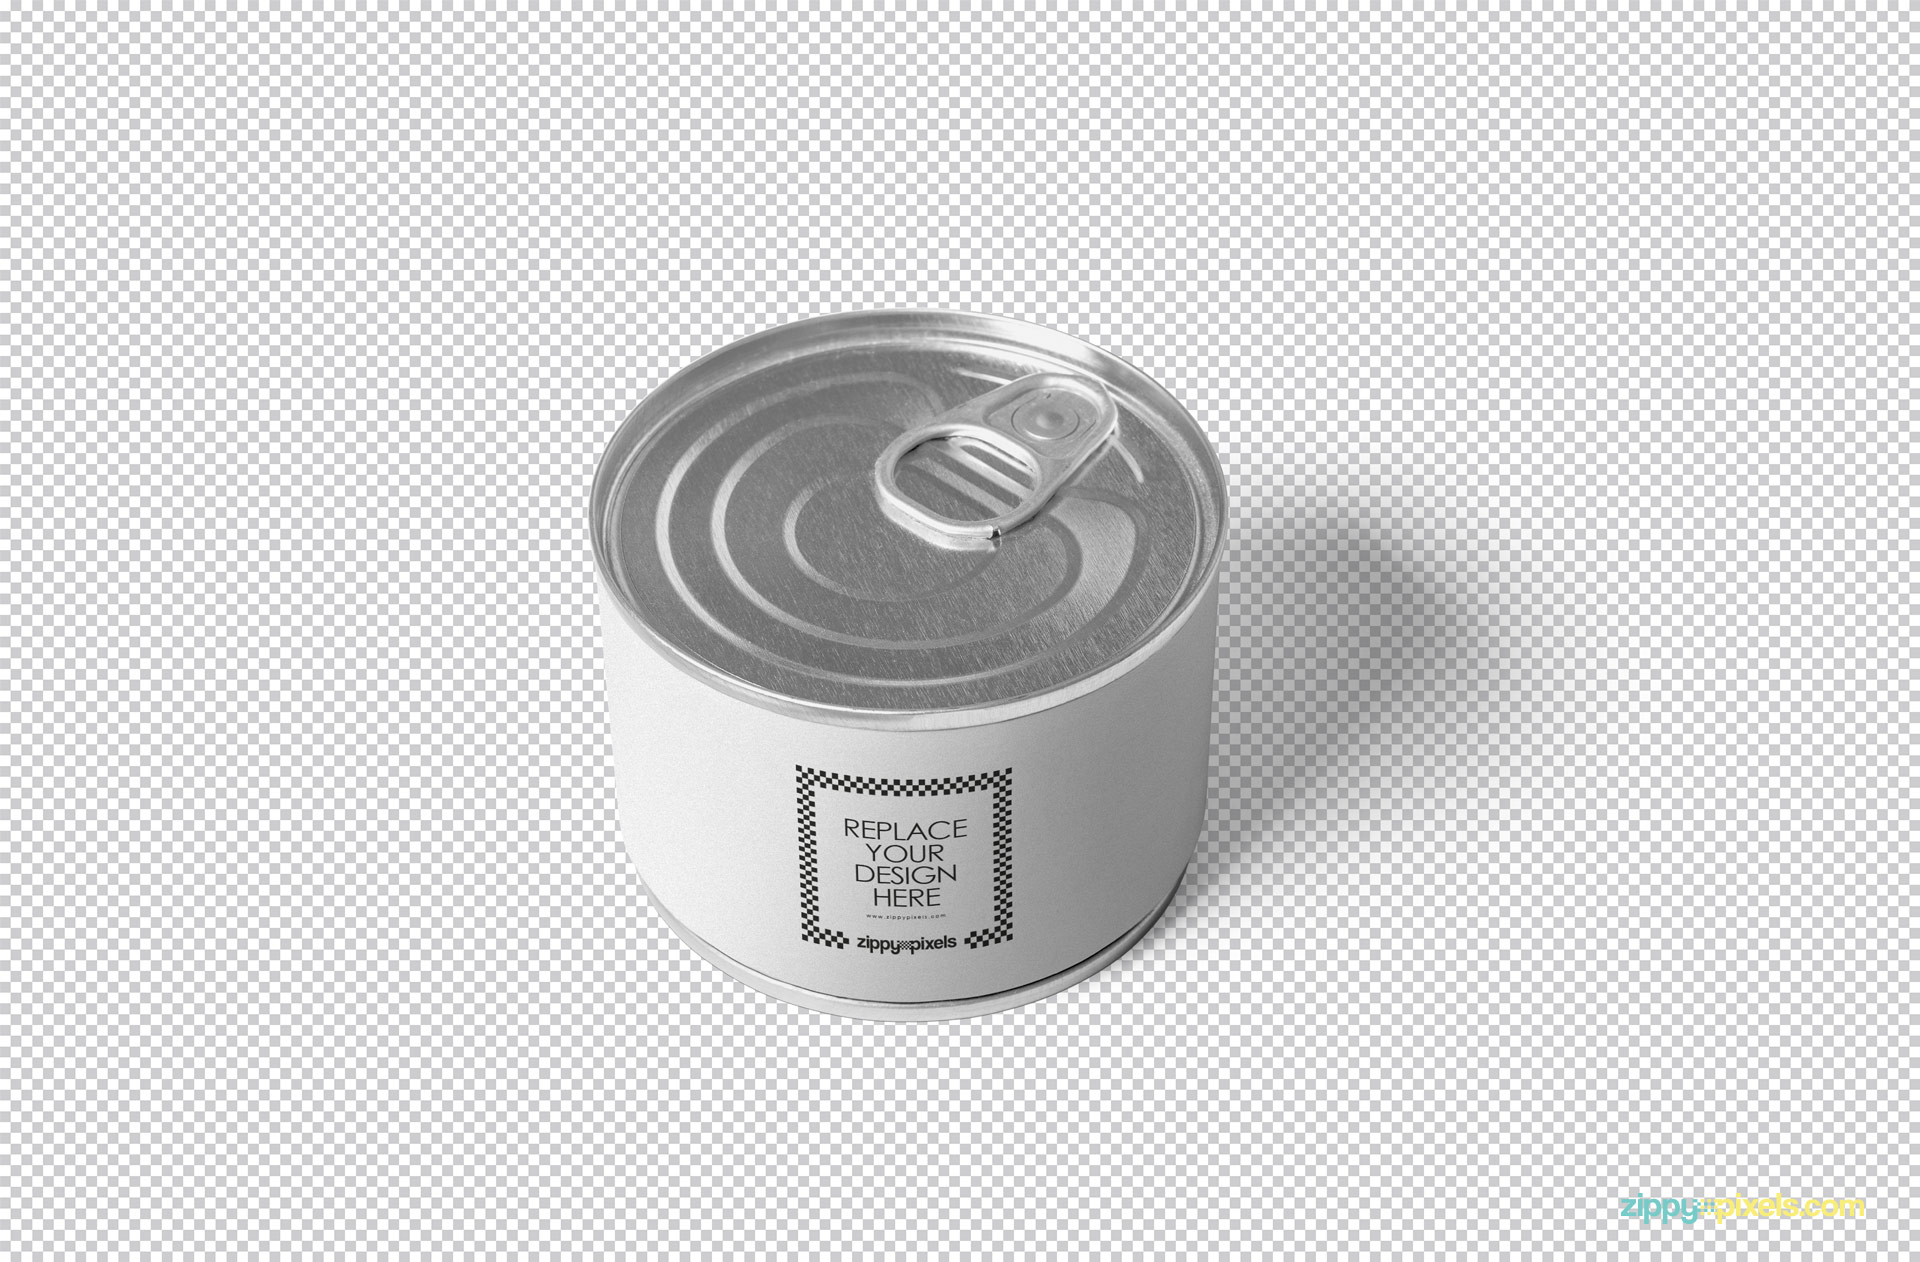 Editable PSD of the tin packaging mockup.